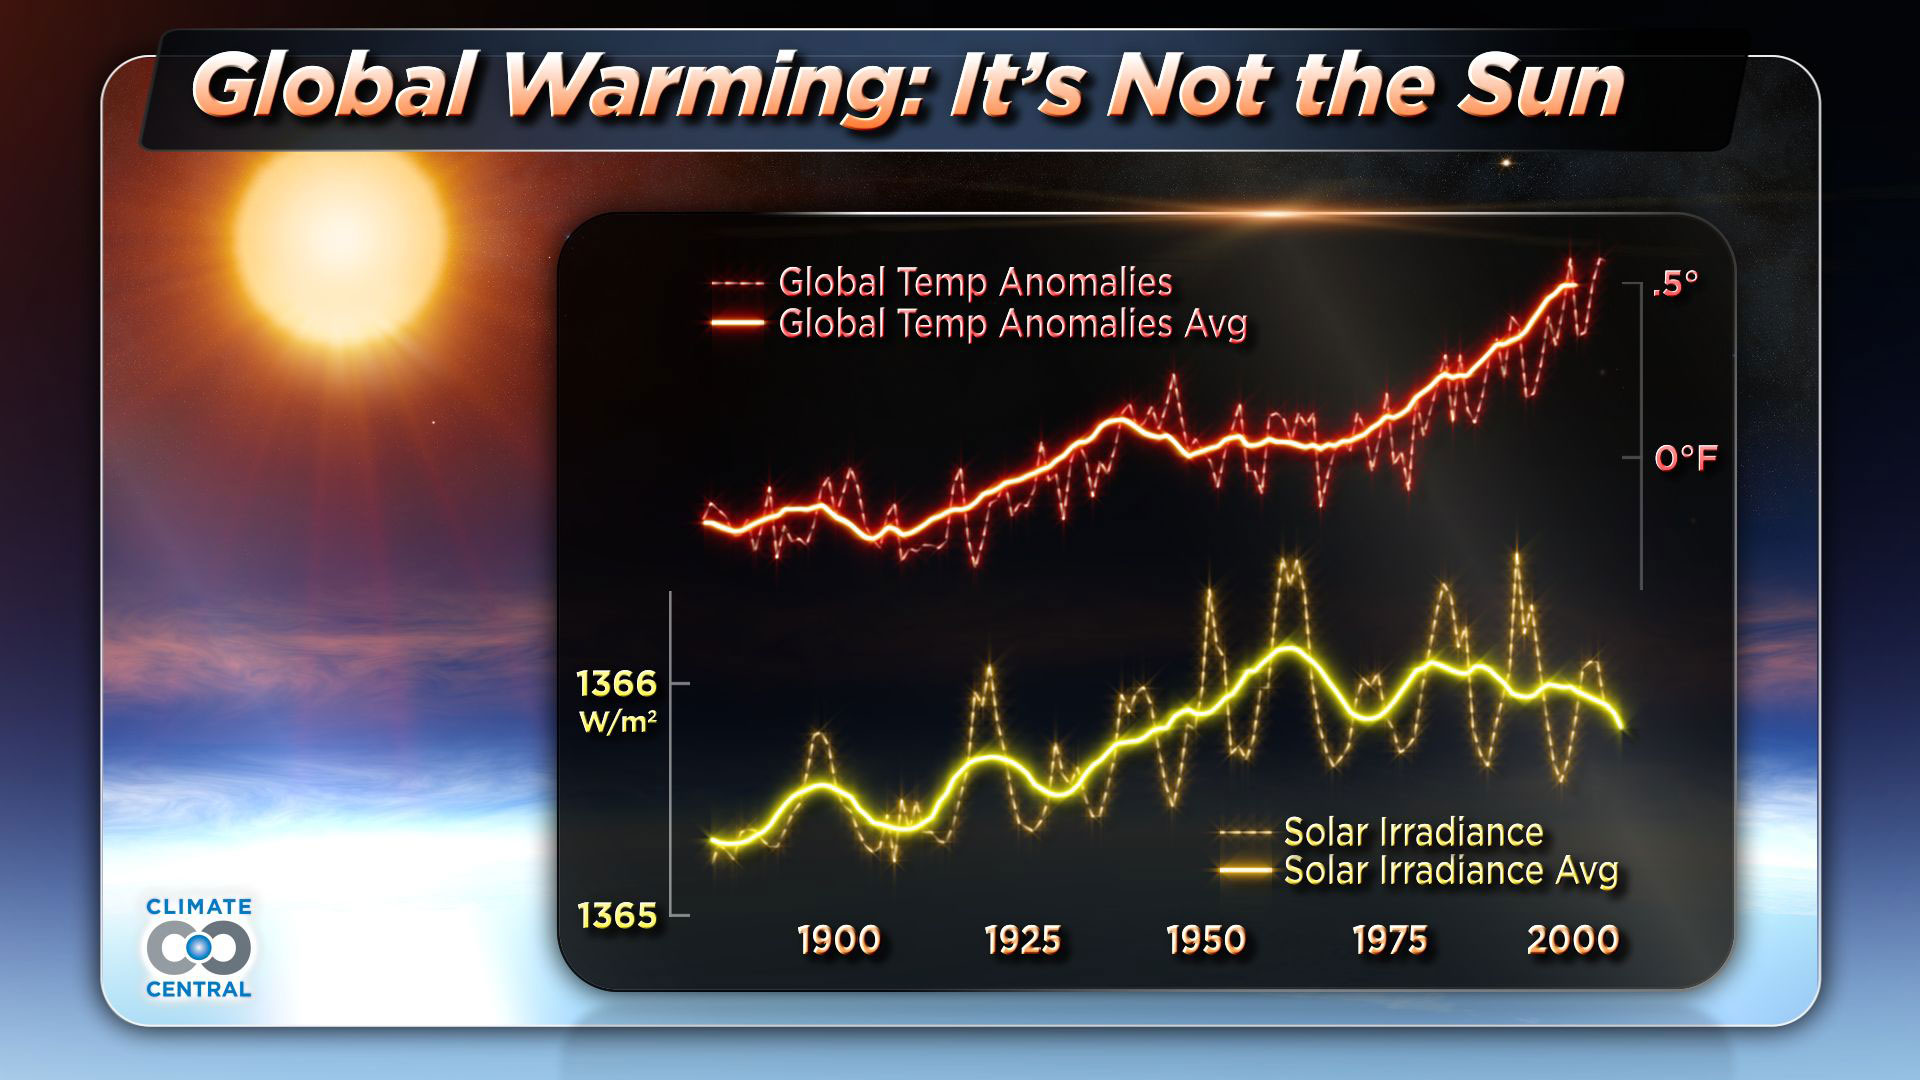 Global Warming: It's Not the Sun